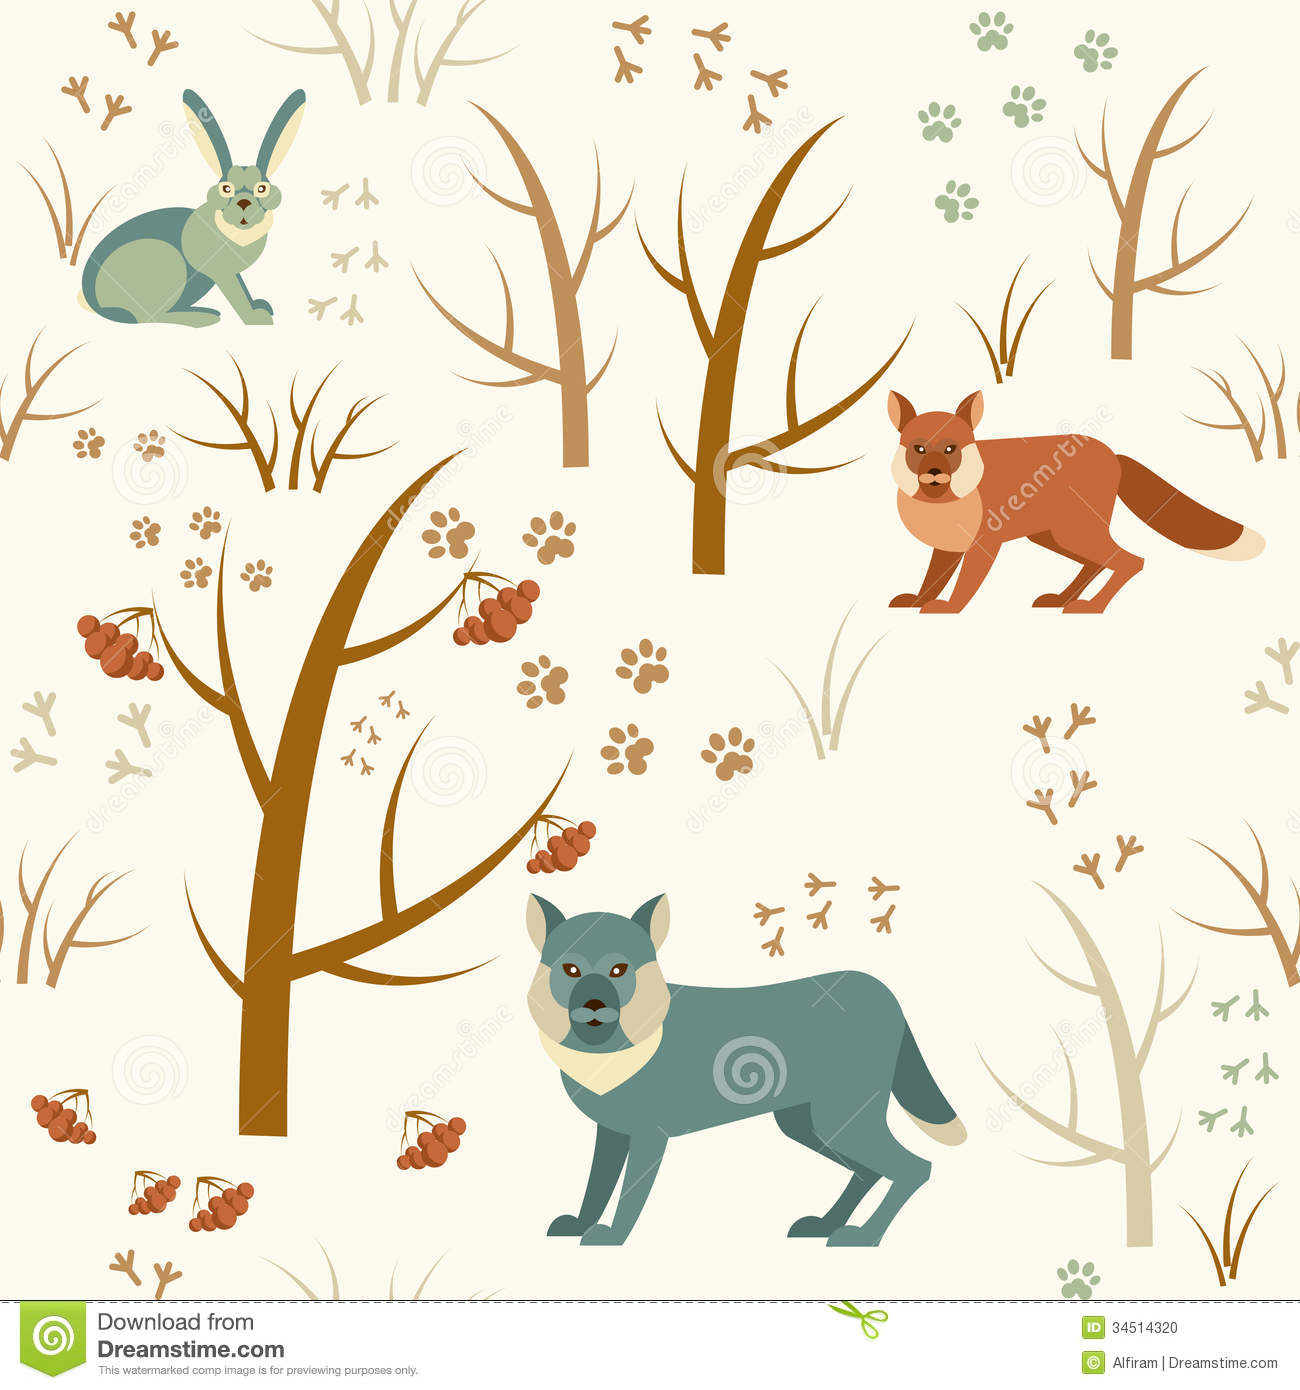 Winter clipart winter animal Animal Winter Clipart photo#5 clipart